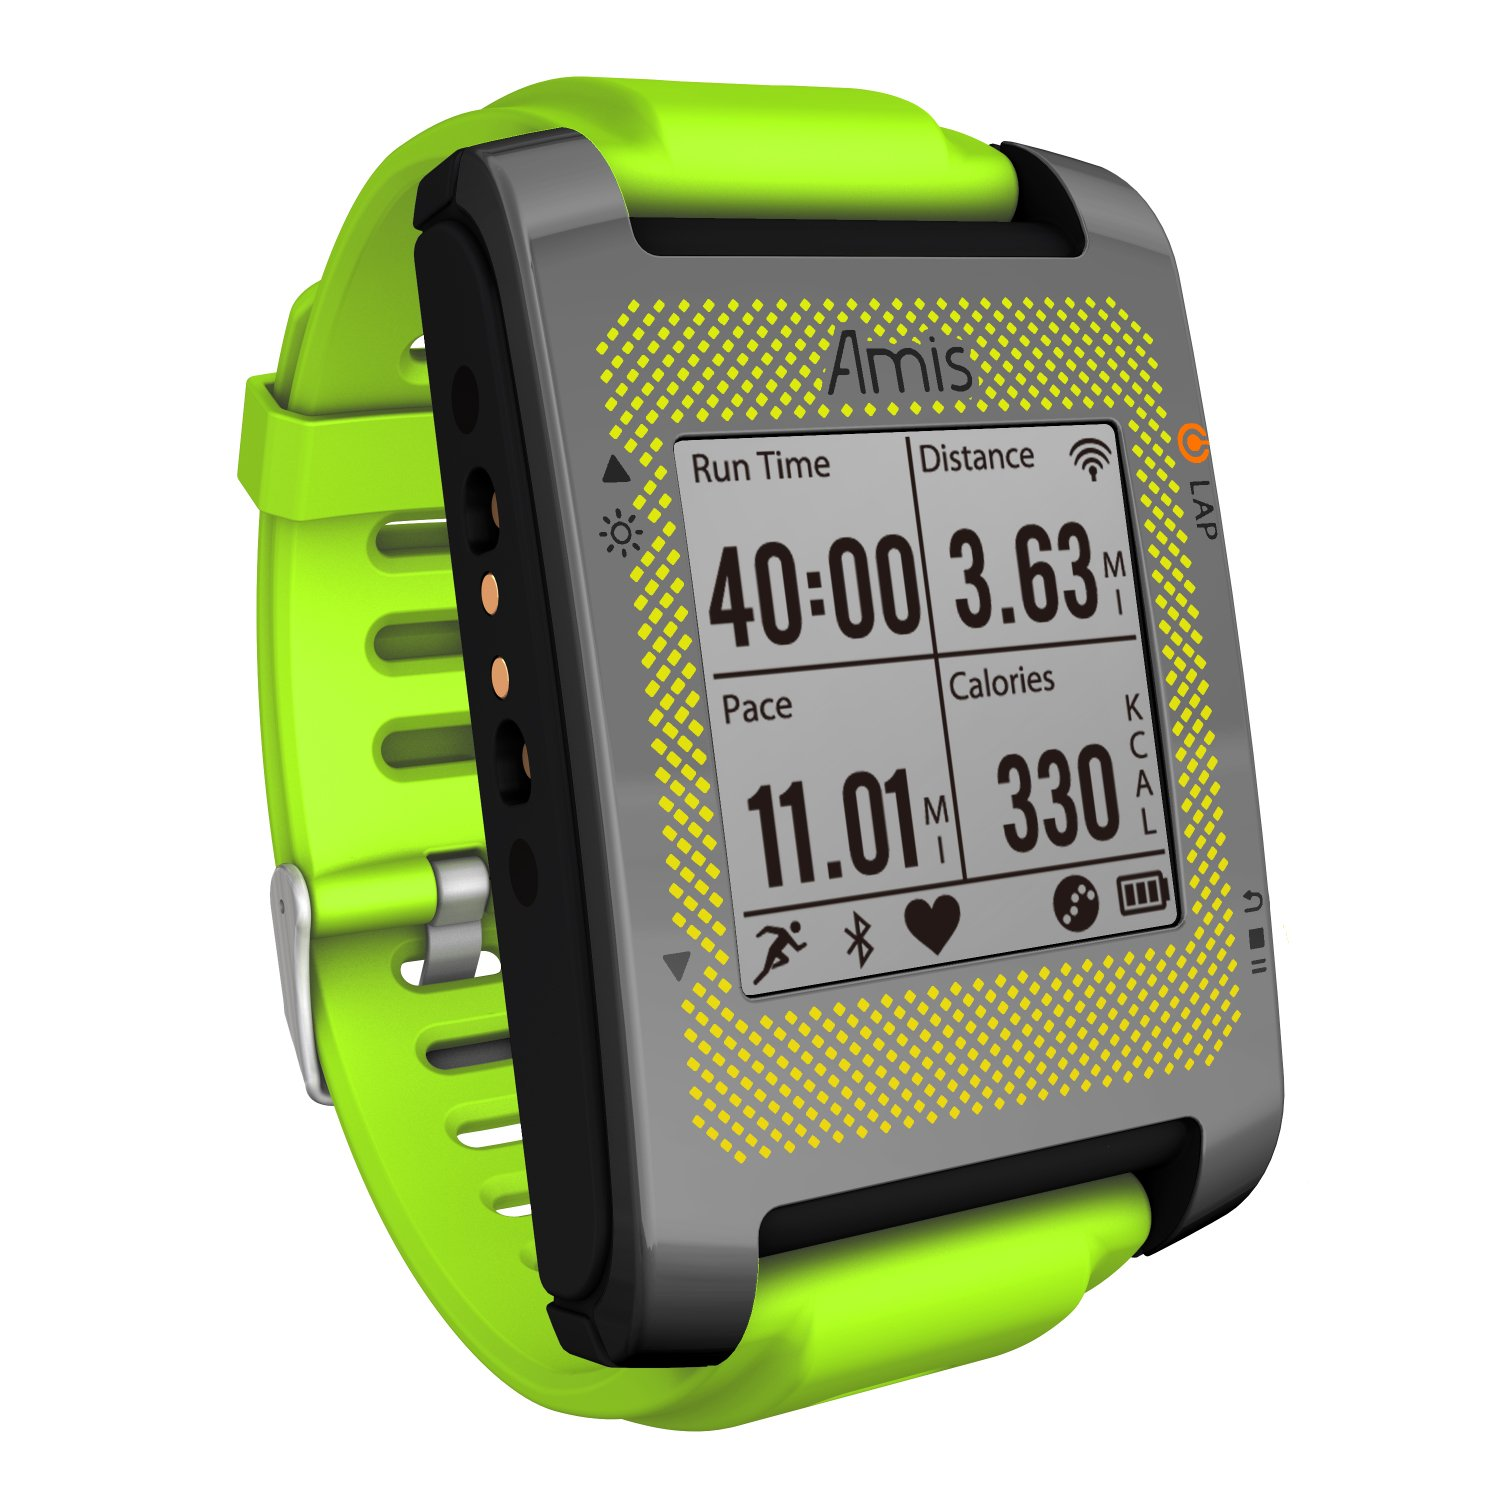 Bryton Amis S630R Smartest GPS Multisport Watch